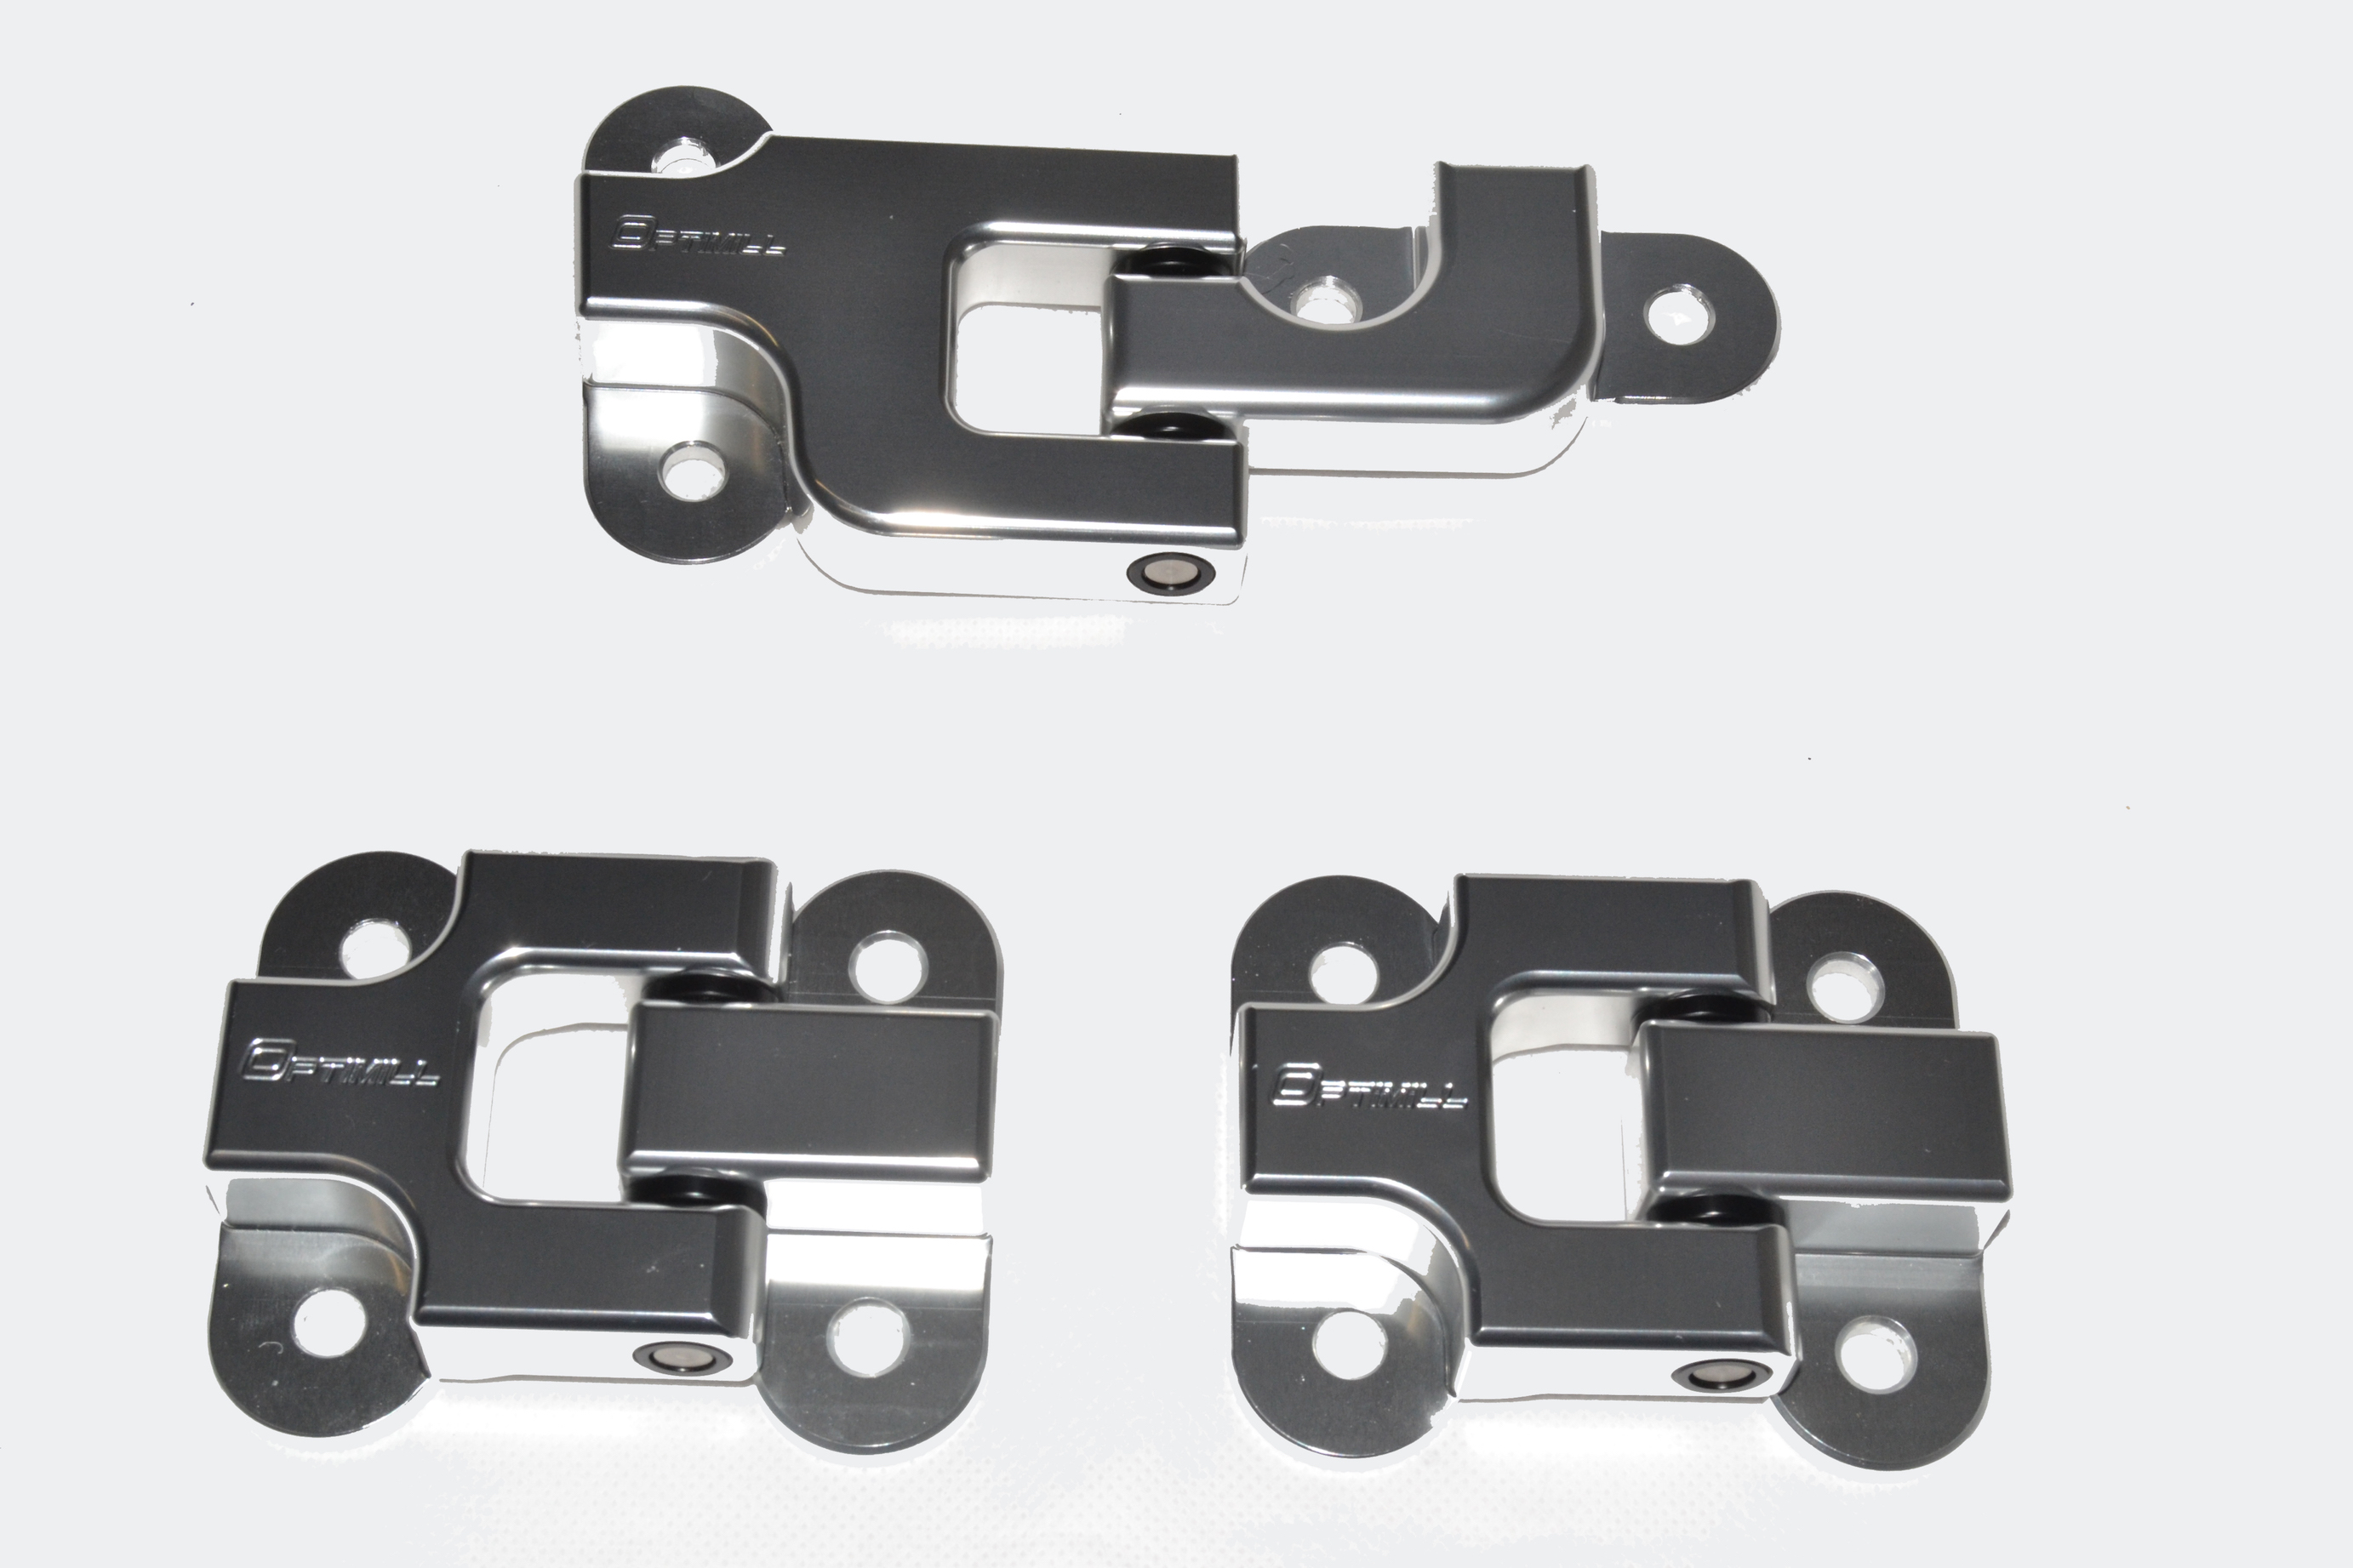 Landrover Defender Rear Door Hinges set of 3 in Silver